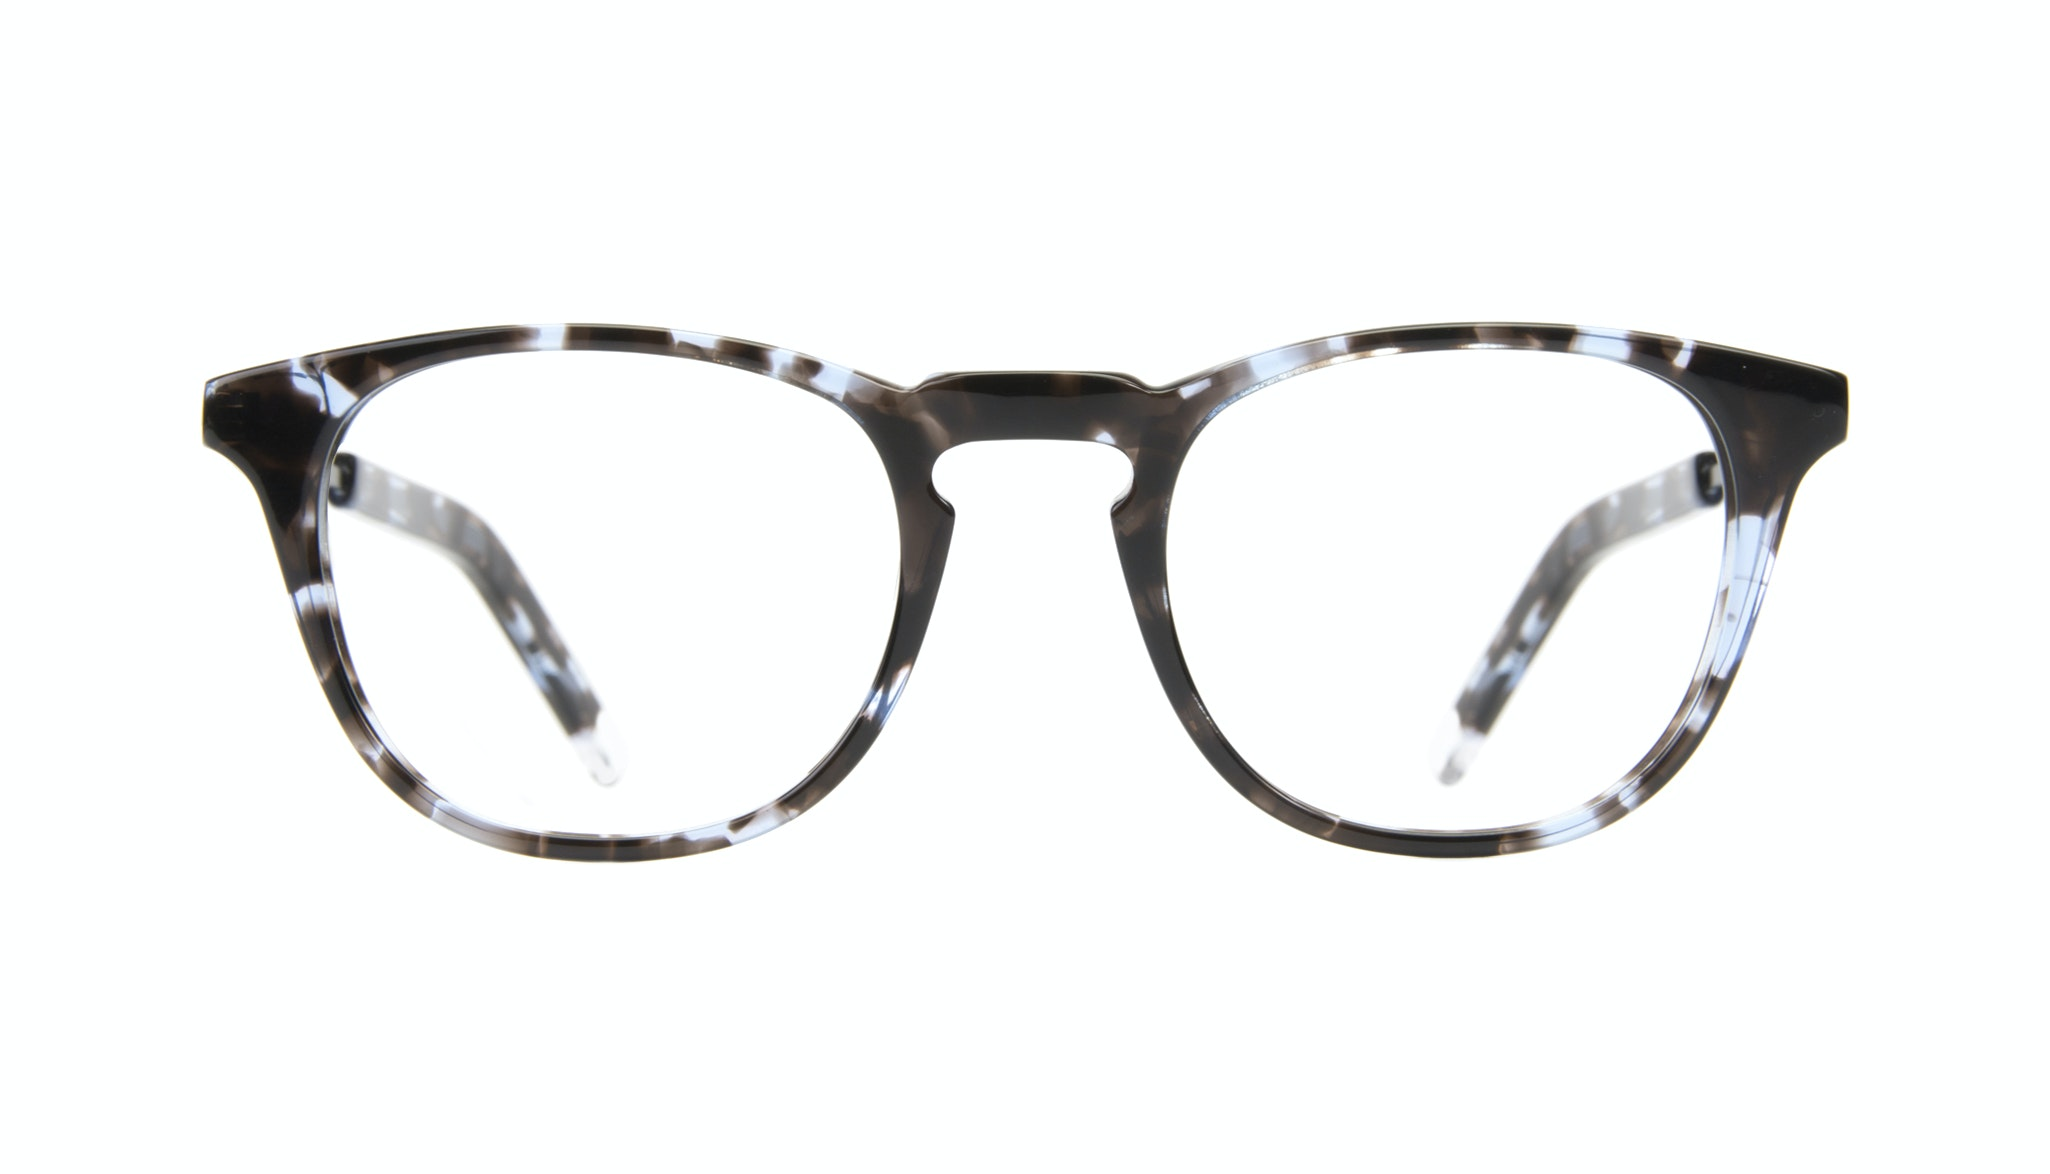 Affordable Fashion Glasses Rectangle Square Eyeglasses Men Sturdy Ink Tort